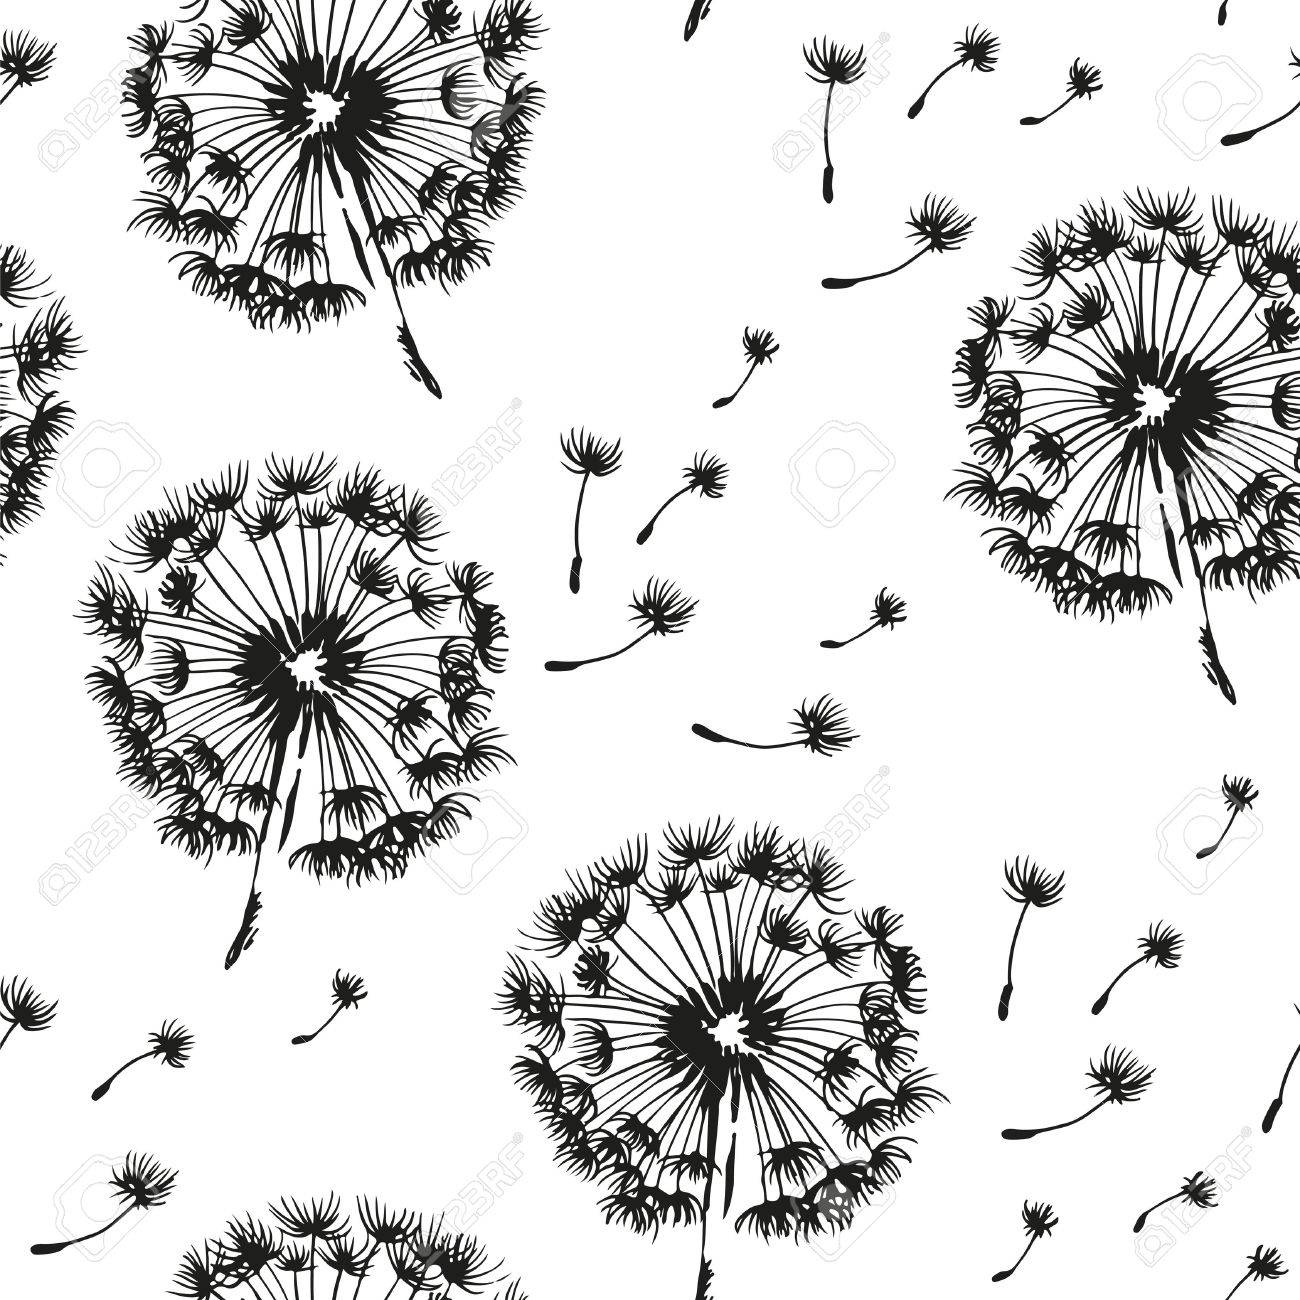 Dandelion and seeds blowing in the wind seamless pattern, vector black and white background - 62842853